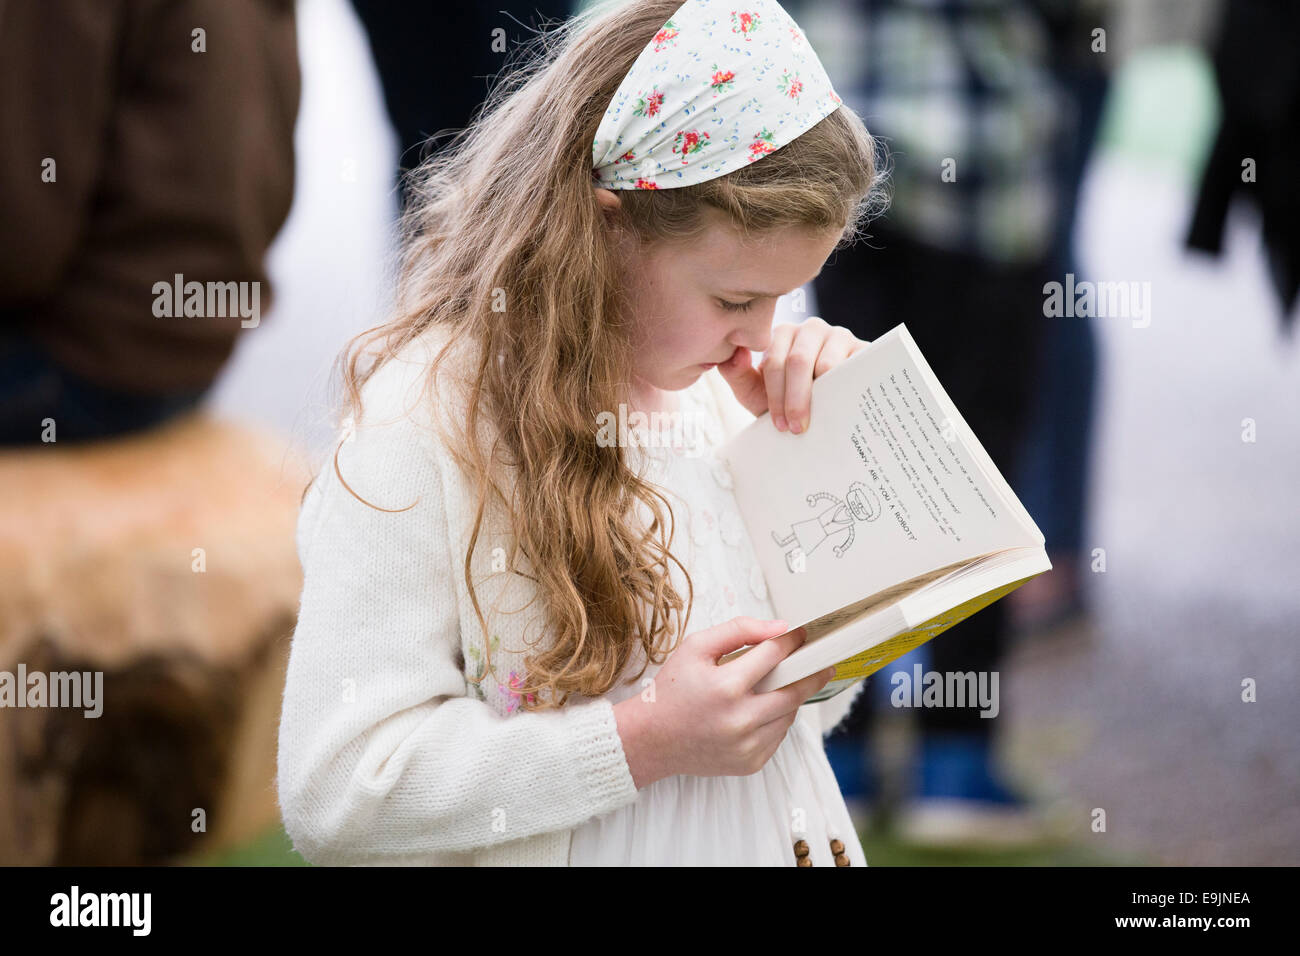 A girl reading a book at the Cheltenham Literature Festival in the UK - Stock Image